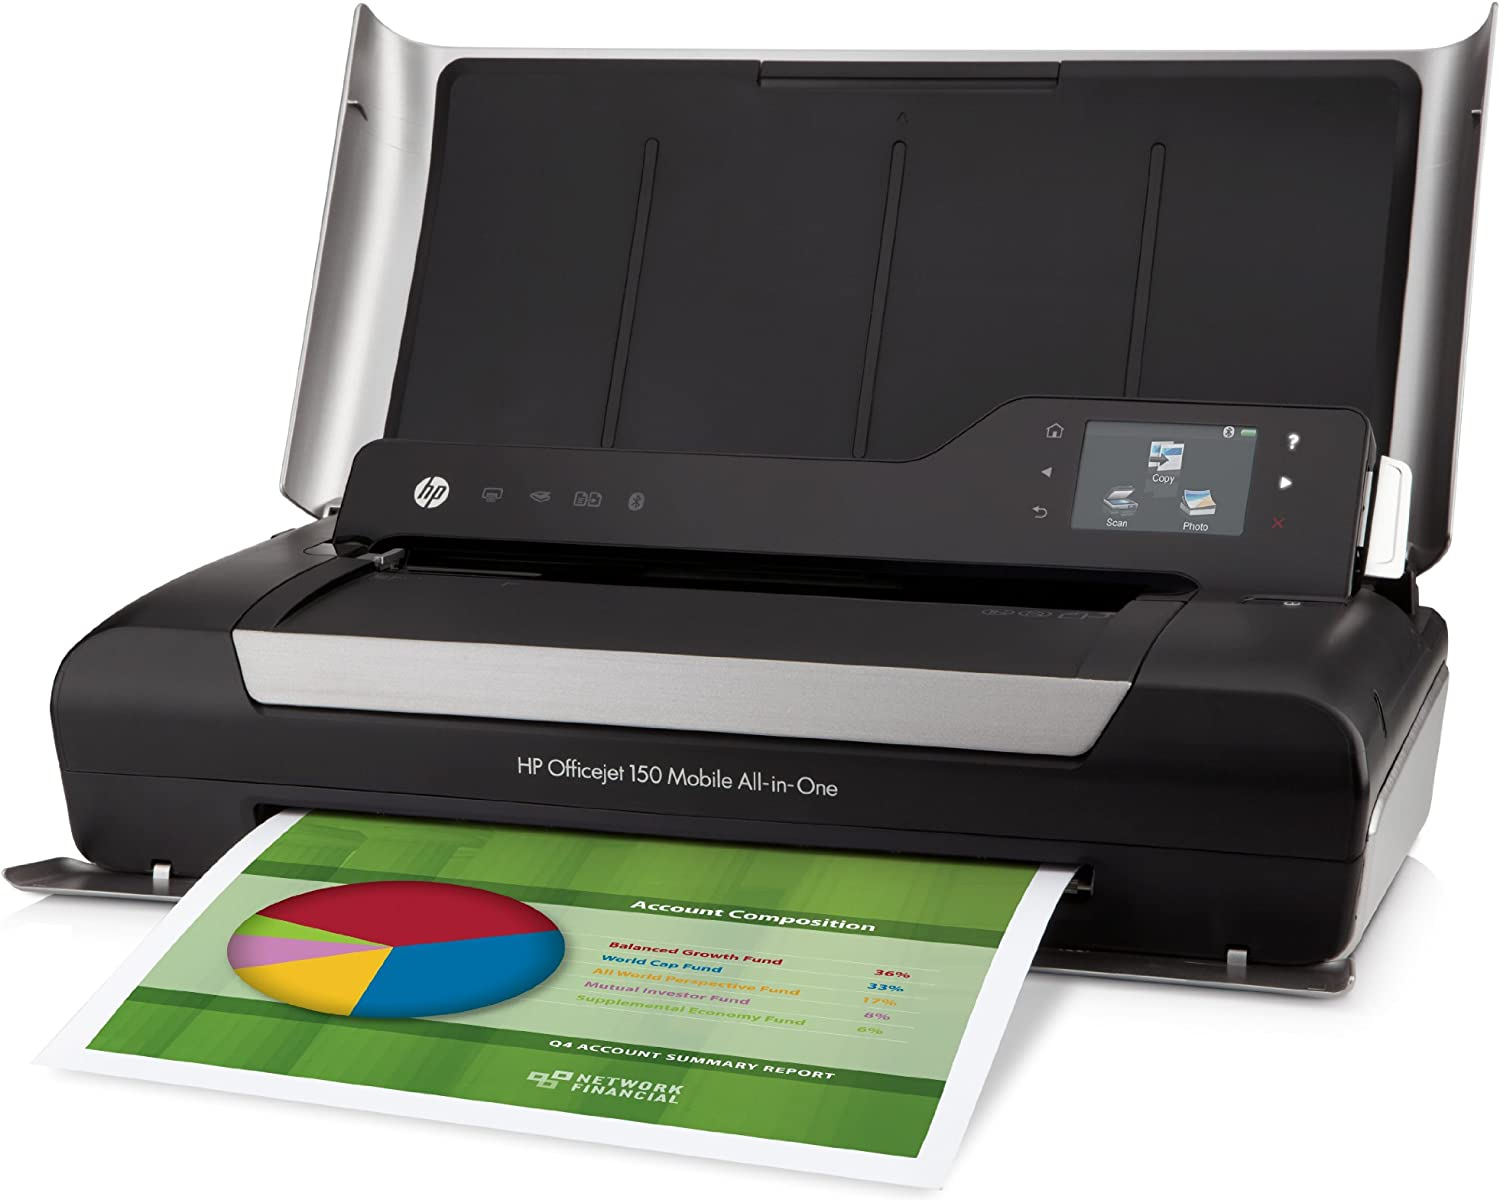 Hp Officejet 150 Mobile Wireless Colour Printer With Copier Amazon Ca Electronics